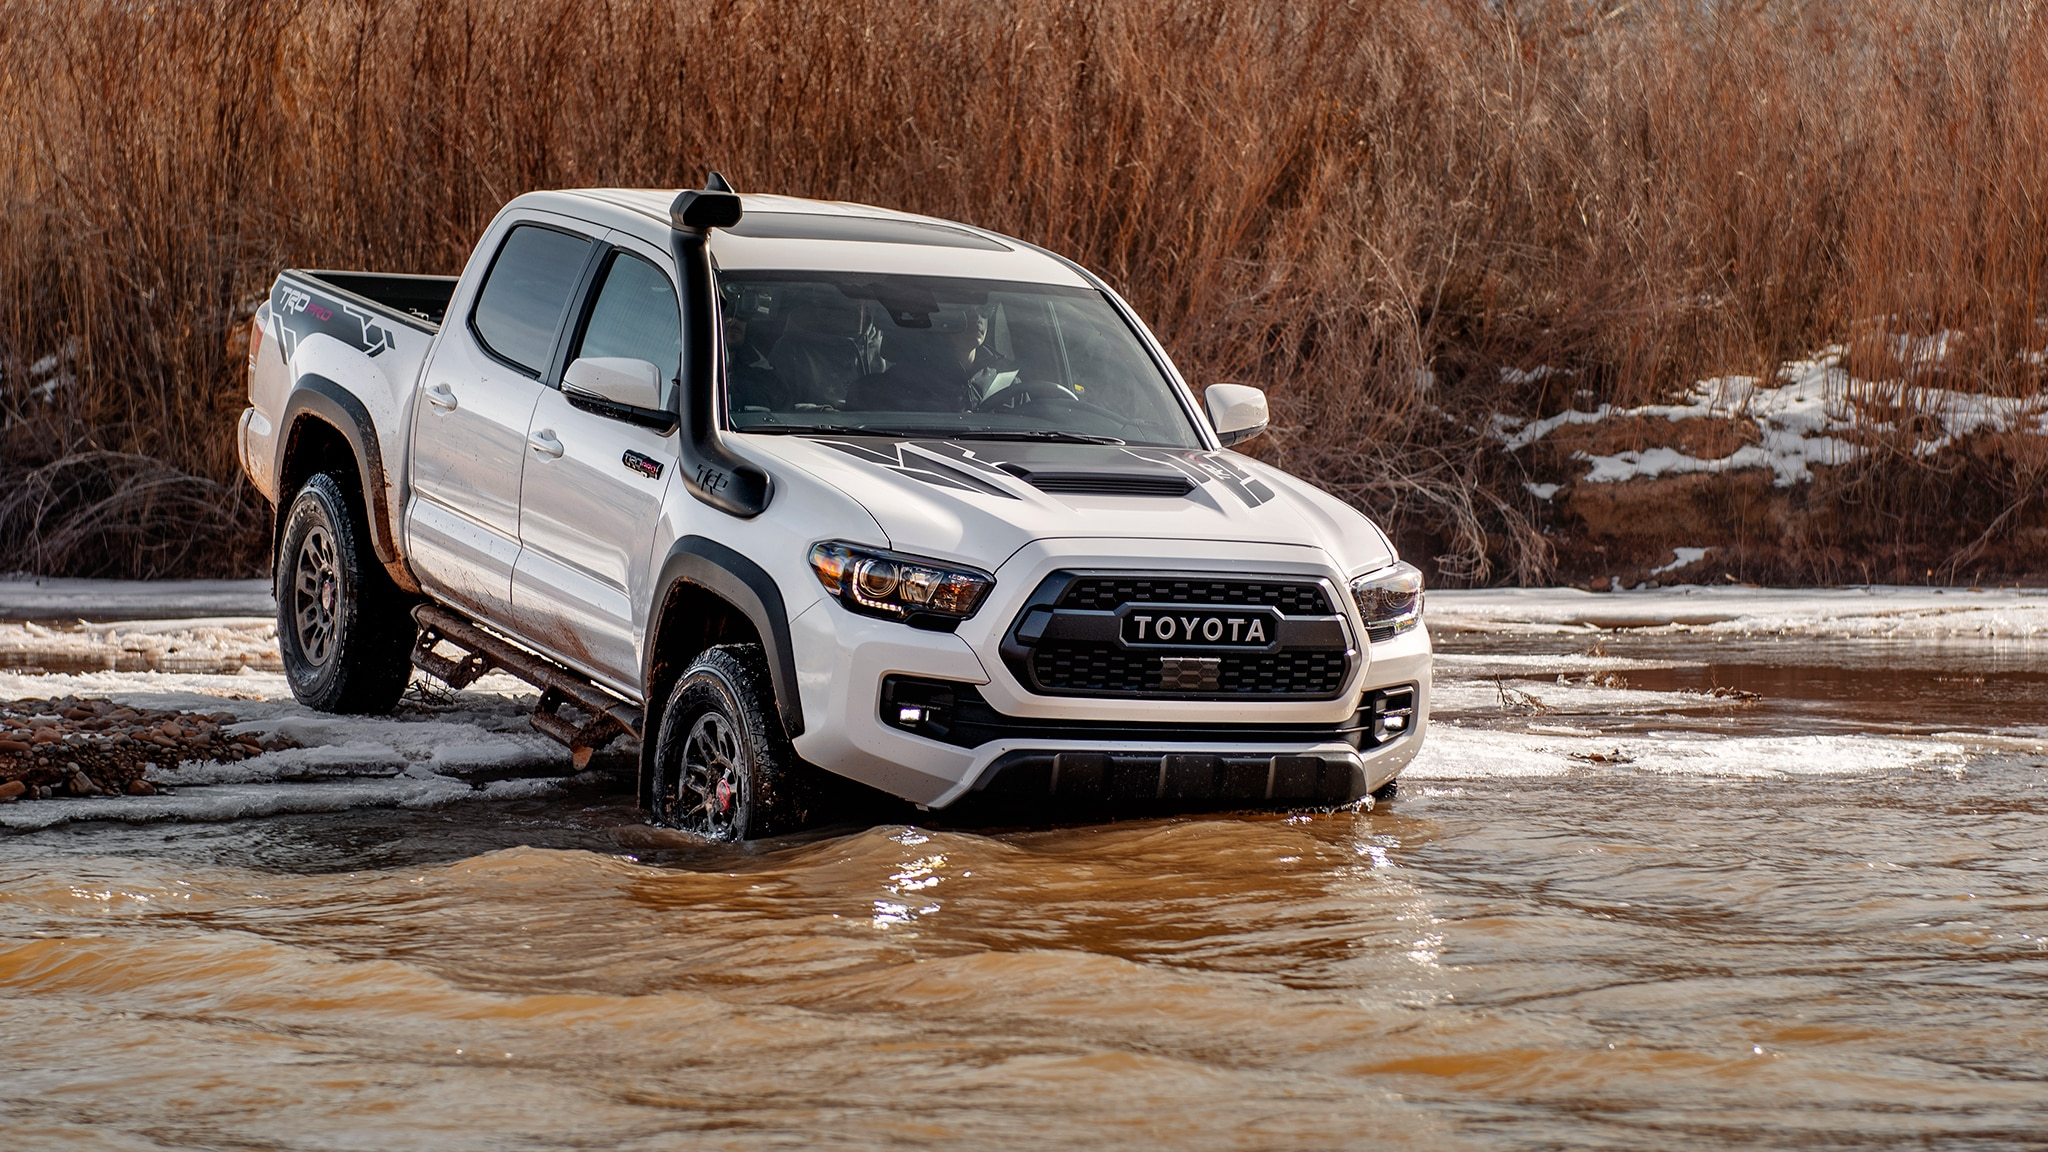 Toyota's Tacoma TRD Pro Conquers the Trail that Killed a